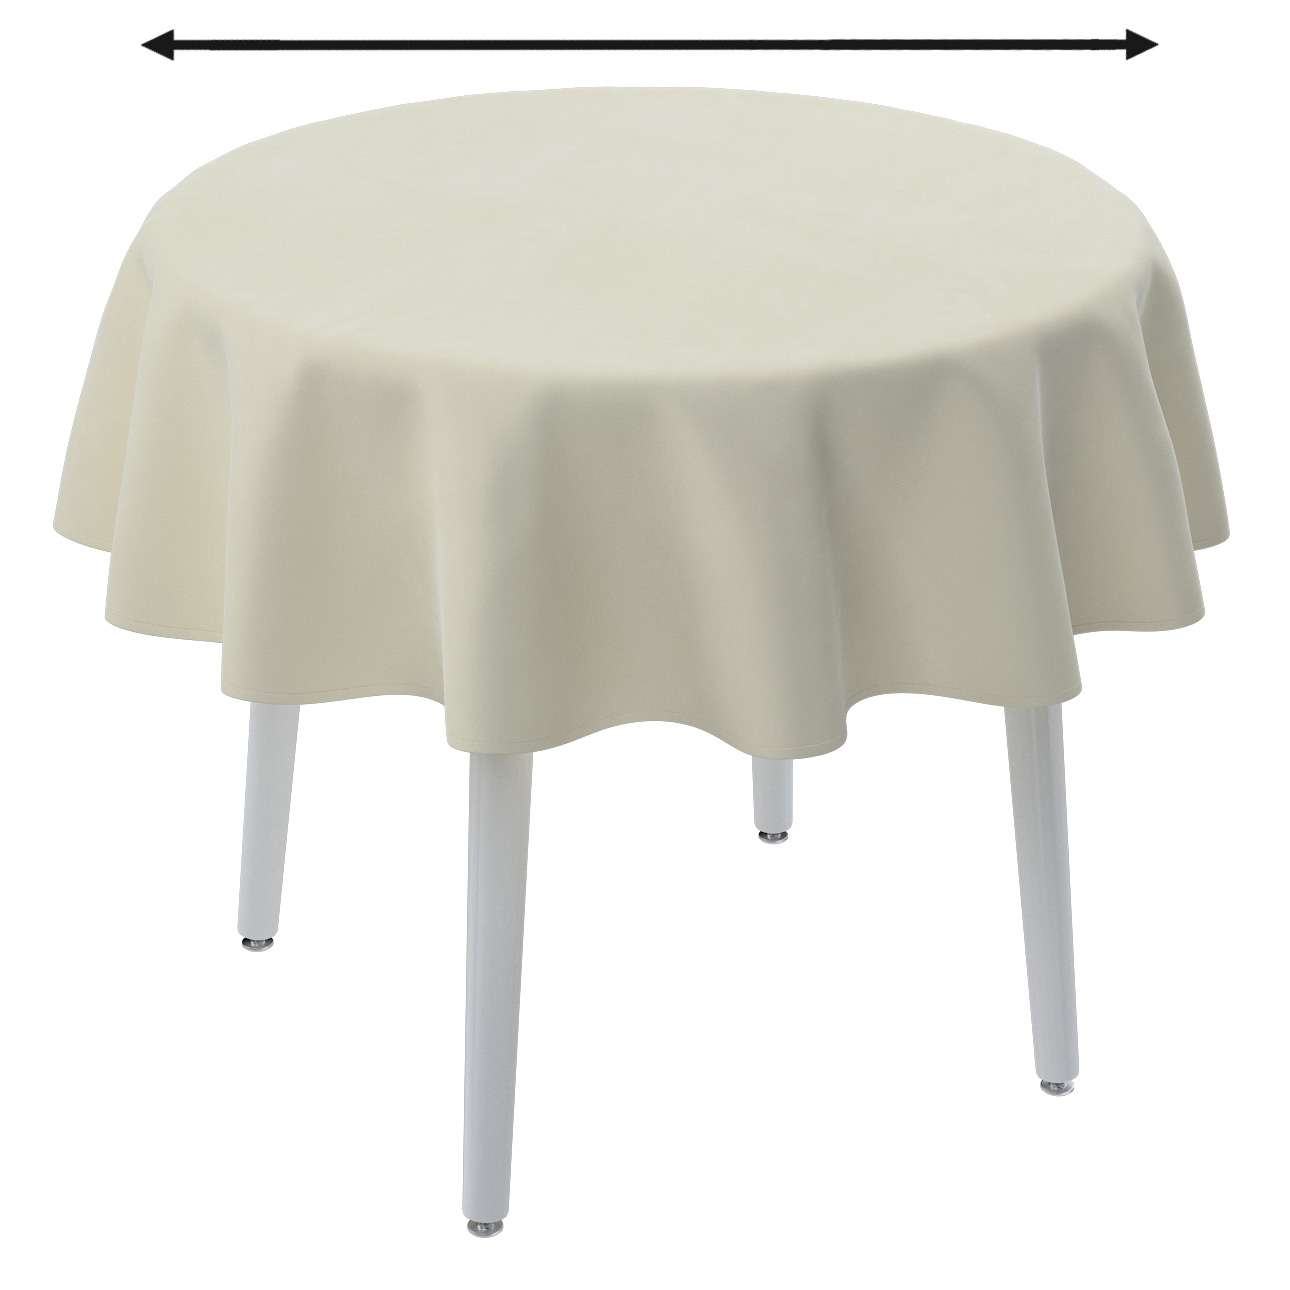 Round tablecloth in collection Velvet, fabric: 704-10